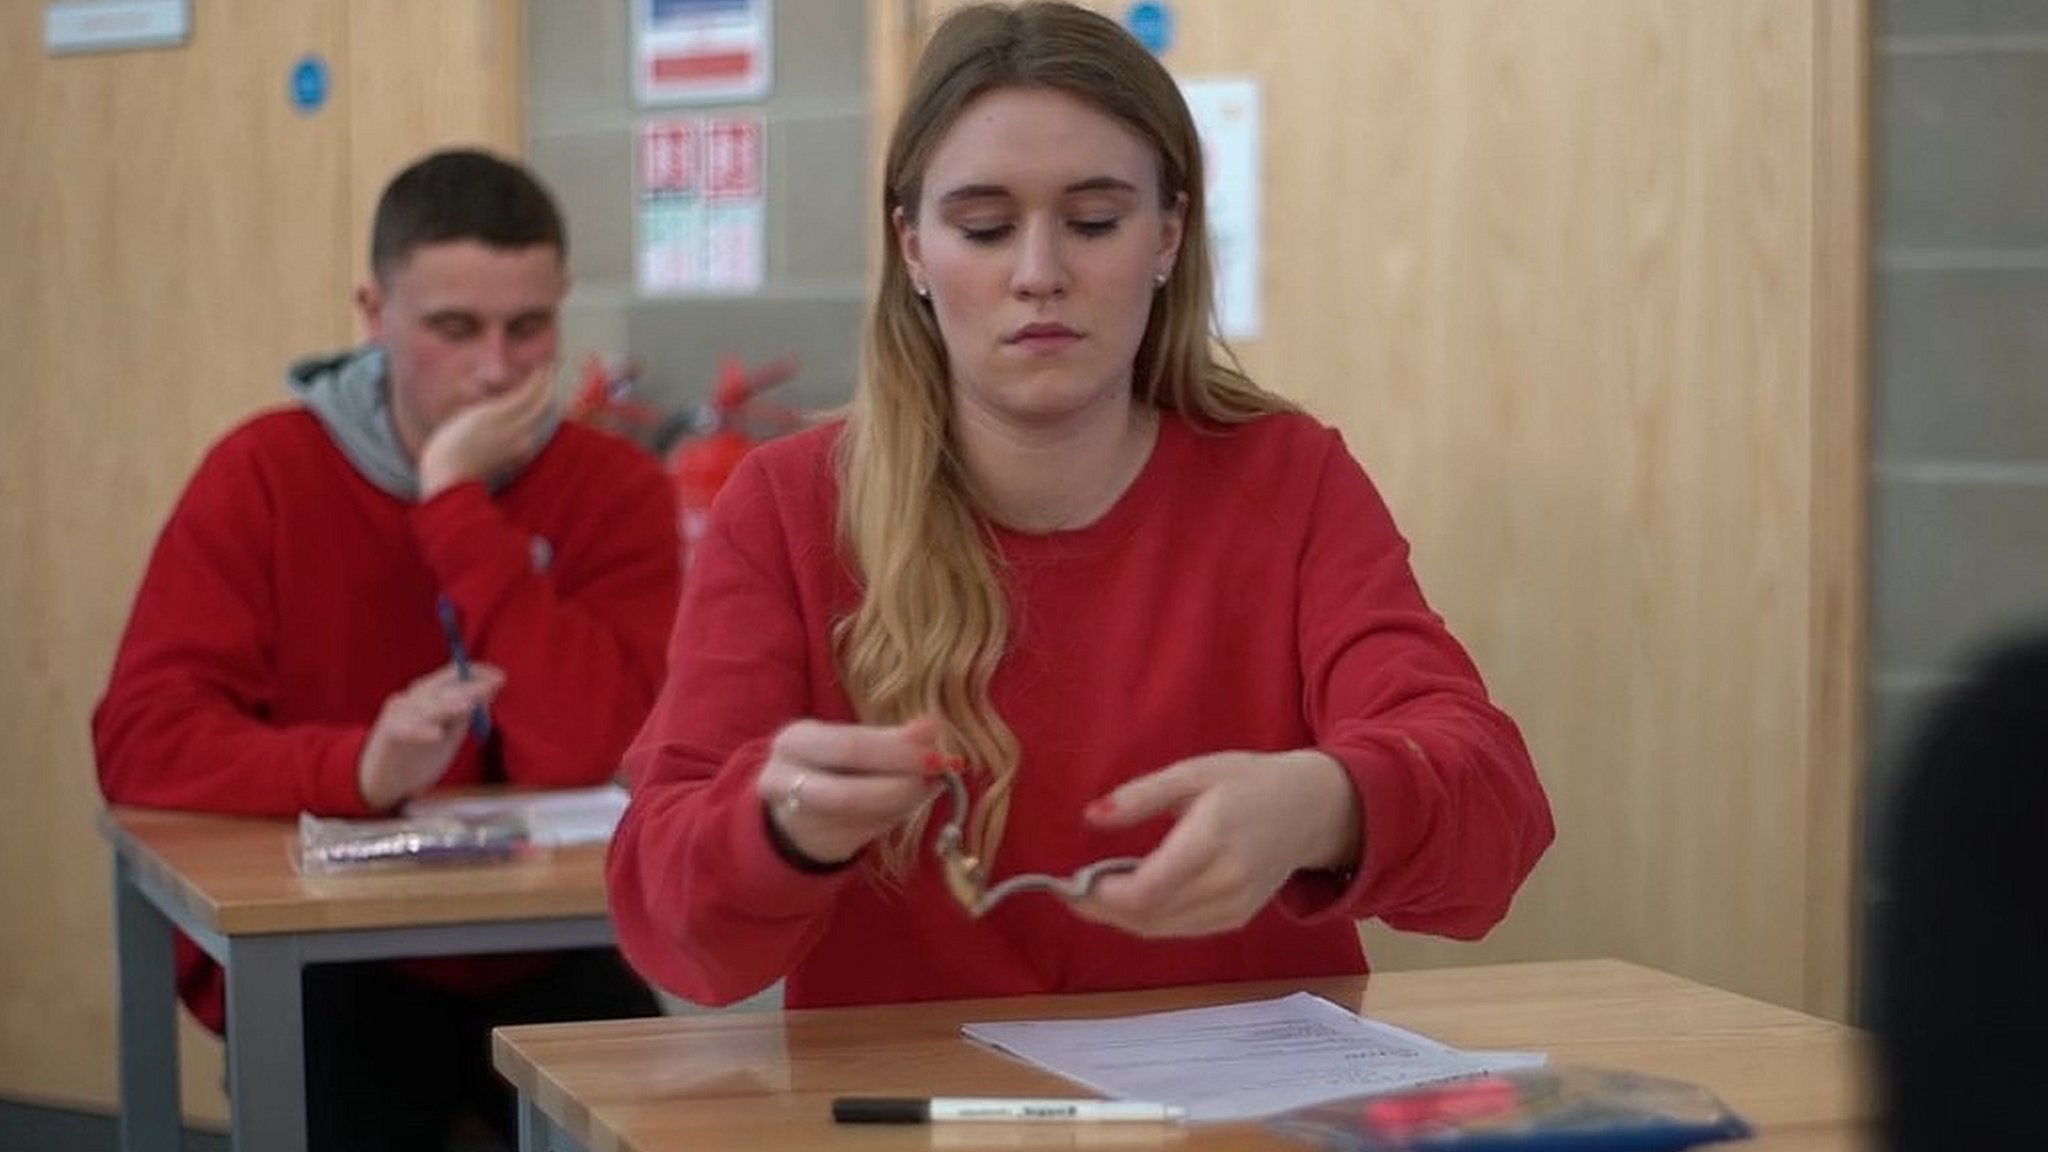 Watch ban imposed at GCSE and A-level exams